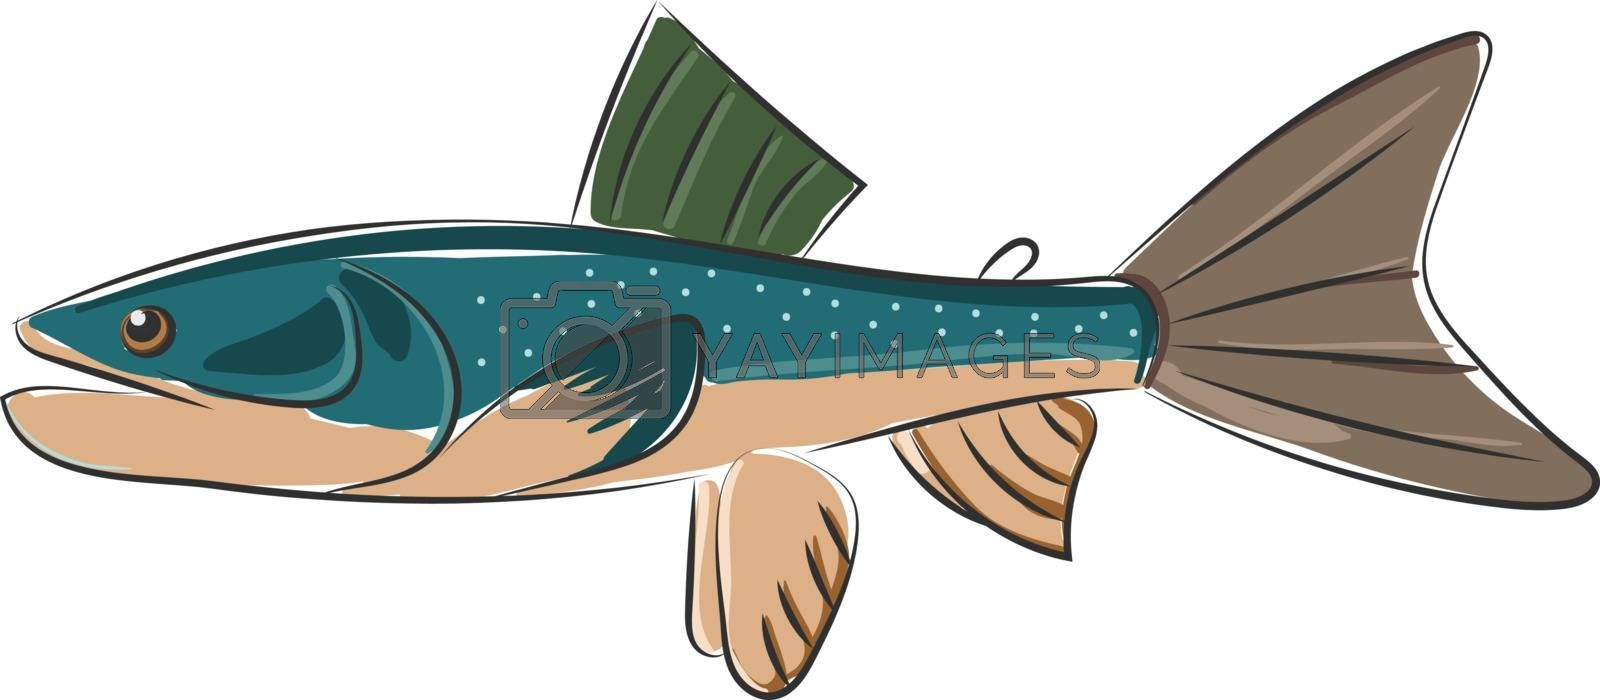 Royalty free image of Cartoon blue-colored palia fish set on isolated white background by Morphart